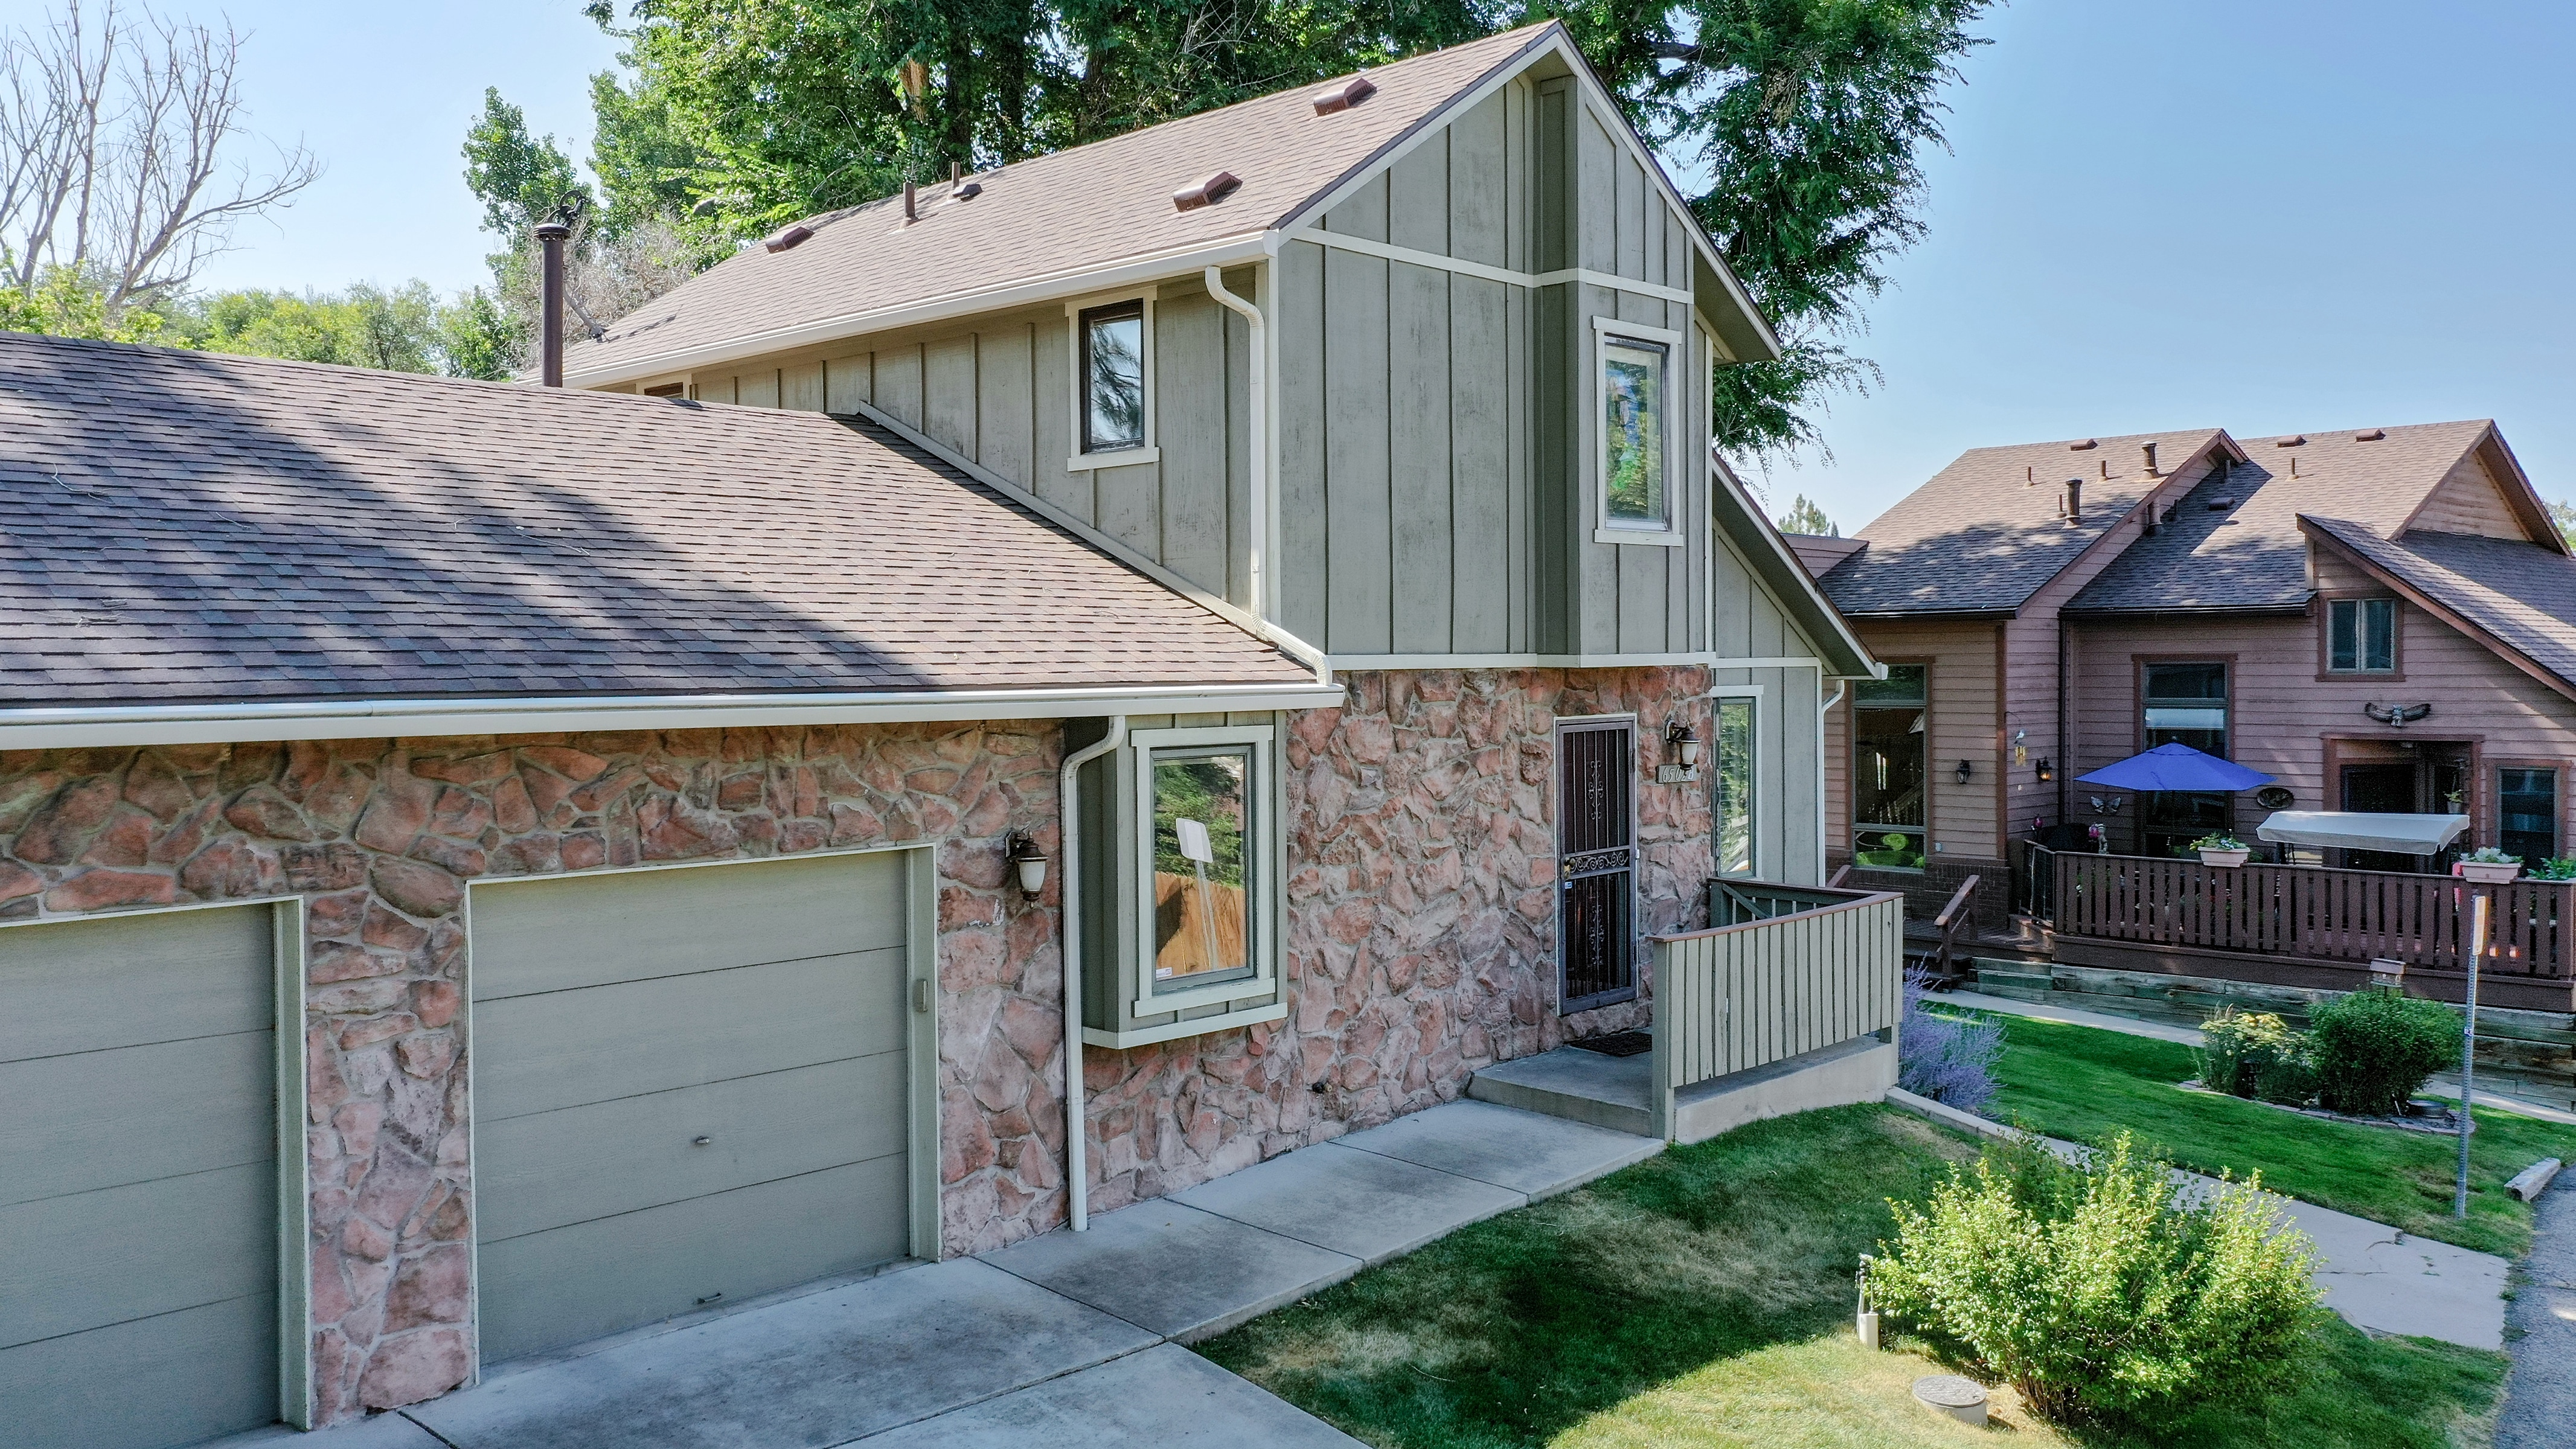 Home for Sale in Arvada 6502 W 58th Ave, Unit B Arvada, CO 80002